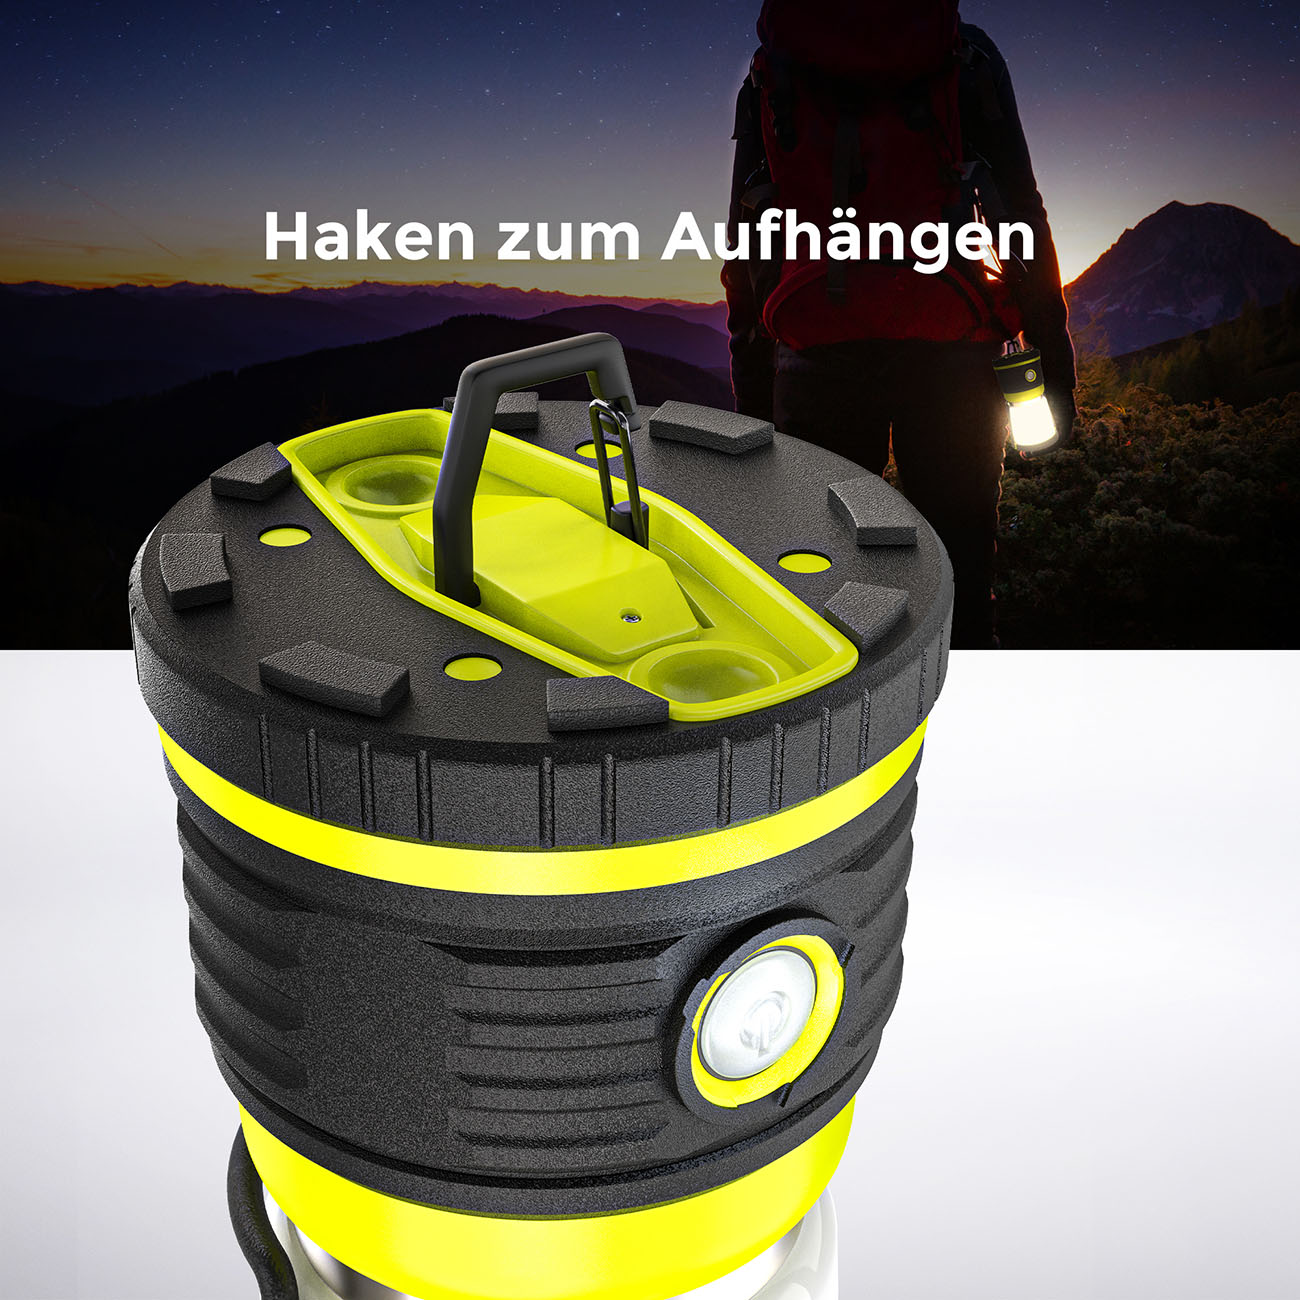 LED Outdoor Campingleuchte mit Tragegriff - 5